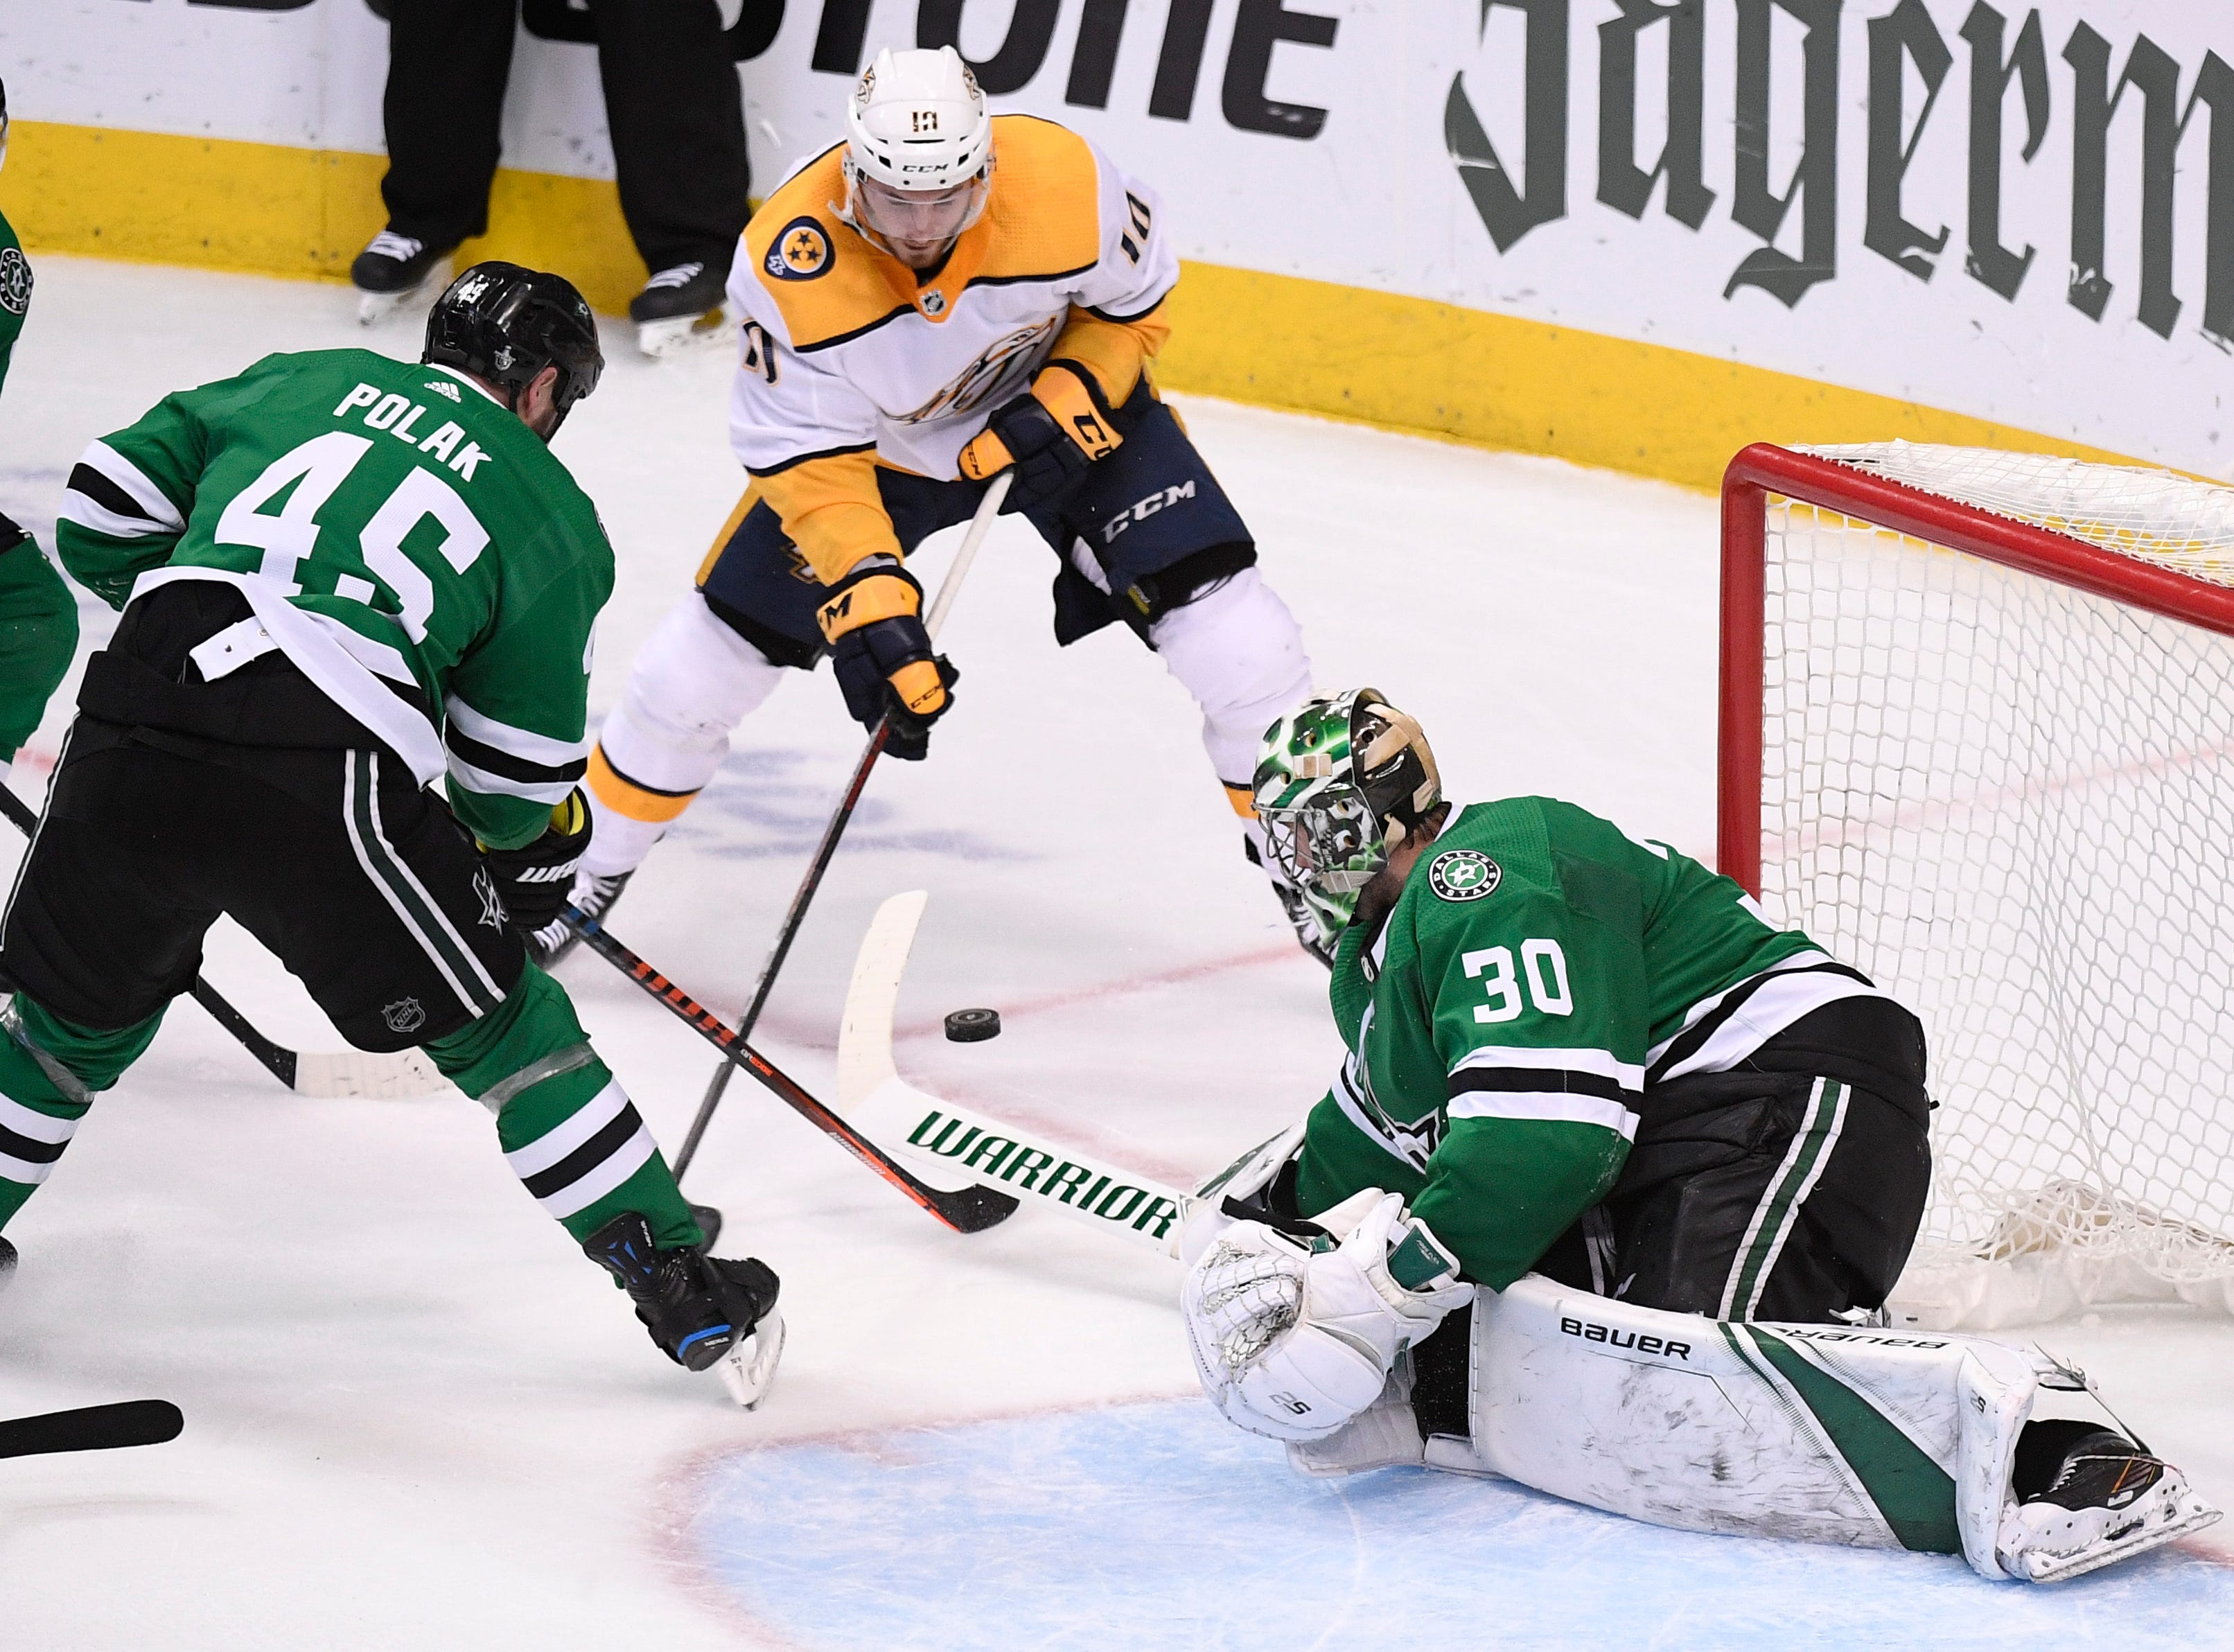 Nashville Predators center Colton Sissons (10) shoots on Dallas Stars goaltender Ben Bishop (30) as Stars defenseman Roman Polak (45) defends during the third period of the divisional semifinal game at the American Airlines Center in Dallas, Texas, Monday, April 22, 2019.